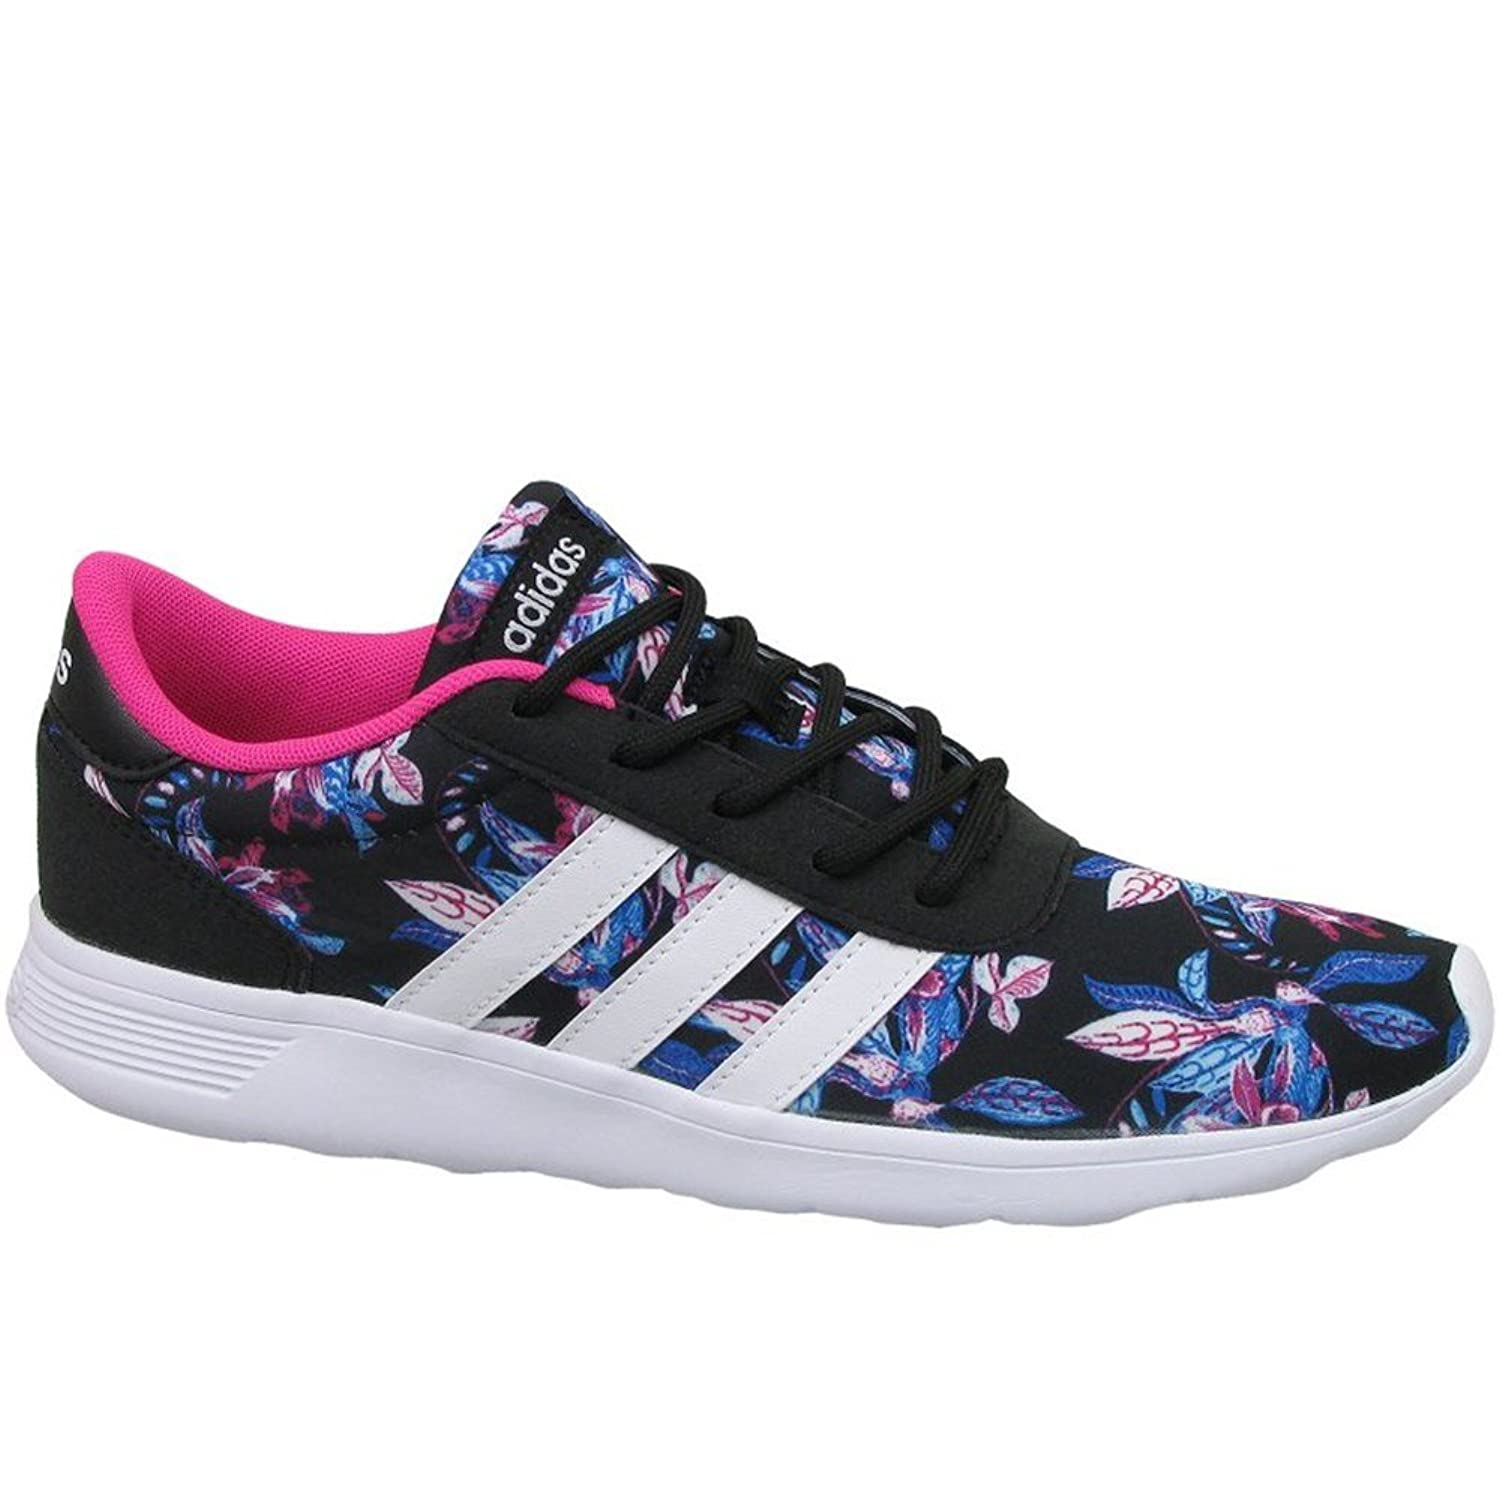 Adidas Lite Racer W AW3835 Womens shoes